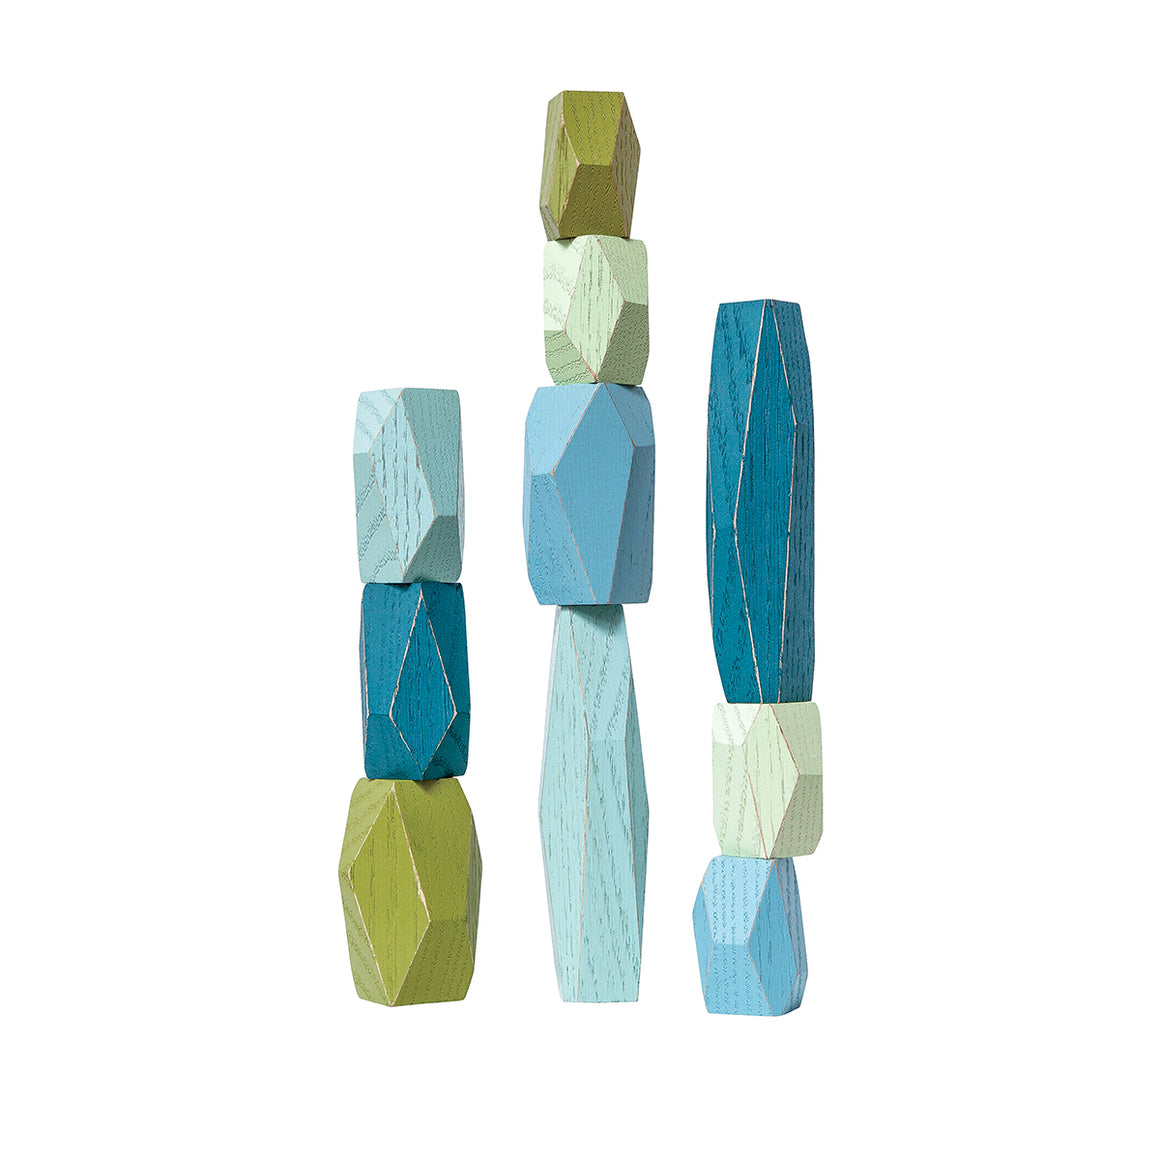 A set of ten faceted blocks made from oak wood and painted in a range of blue and green tones.